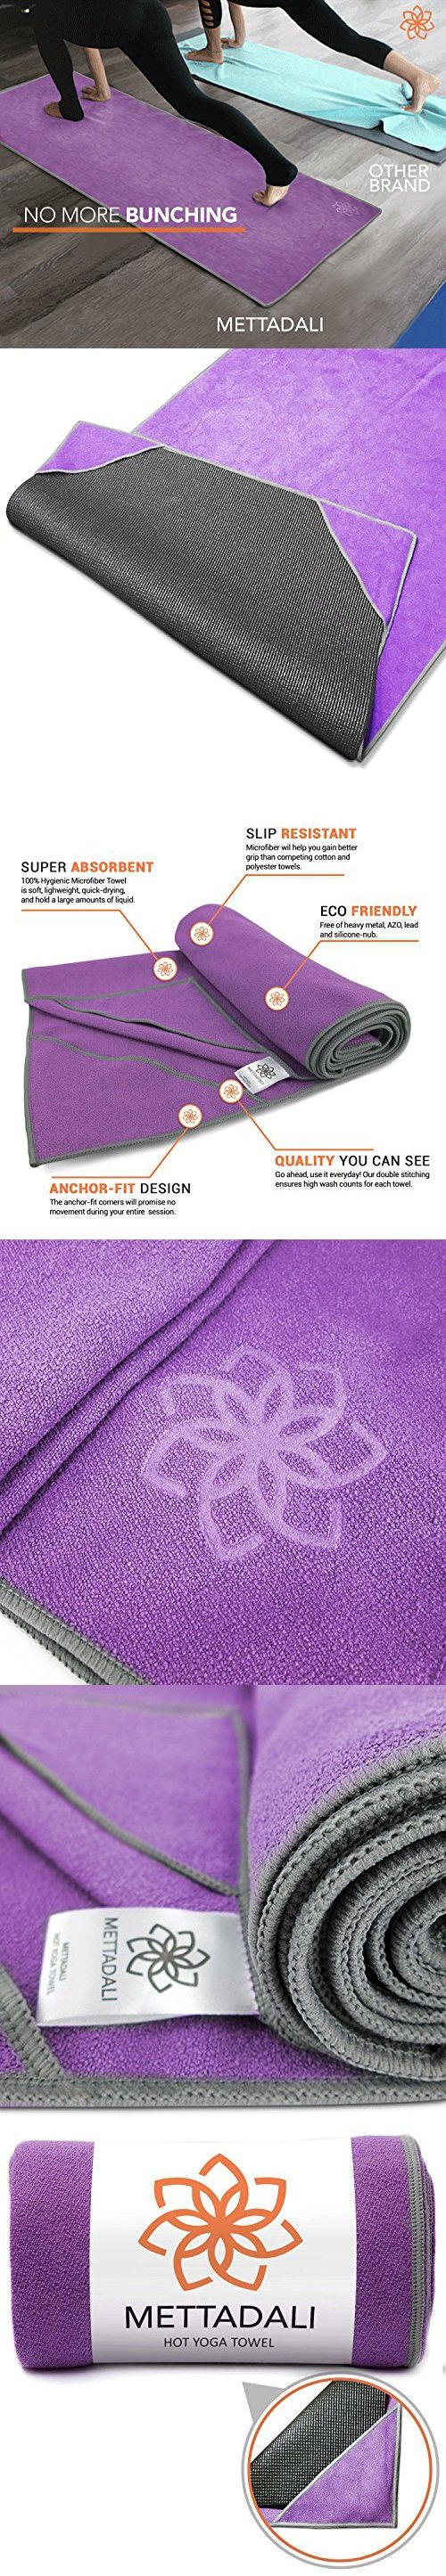 Mettadali Machine Washable Yoga Towel - Purple - Medium - 72 x 24 Inch